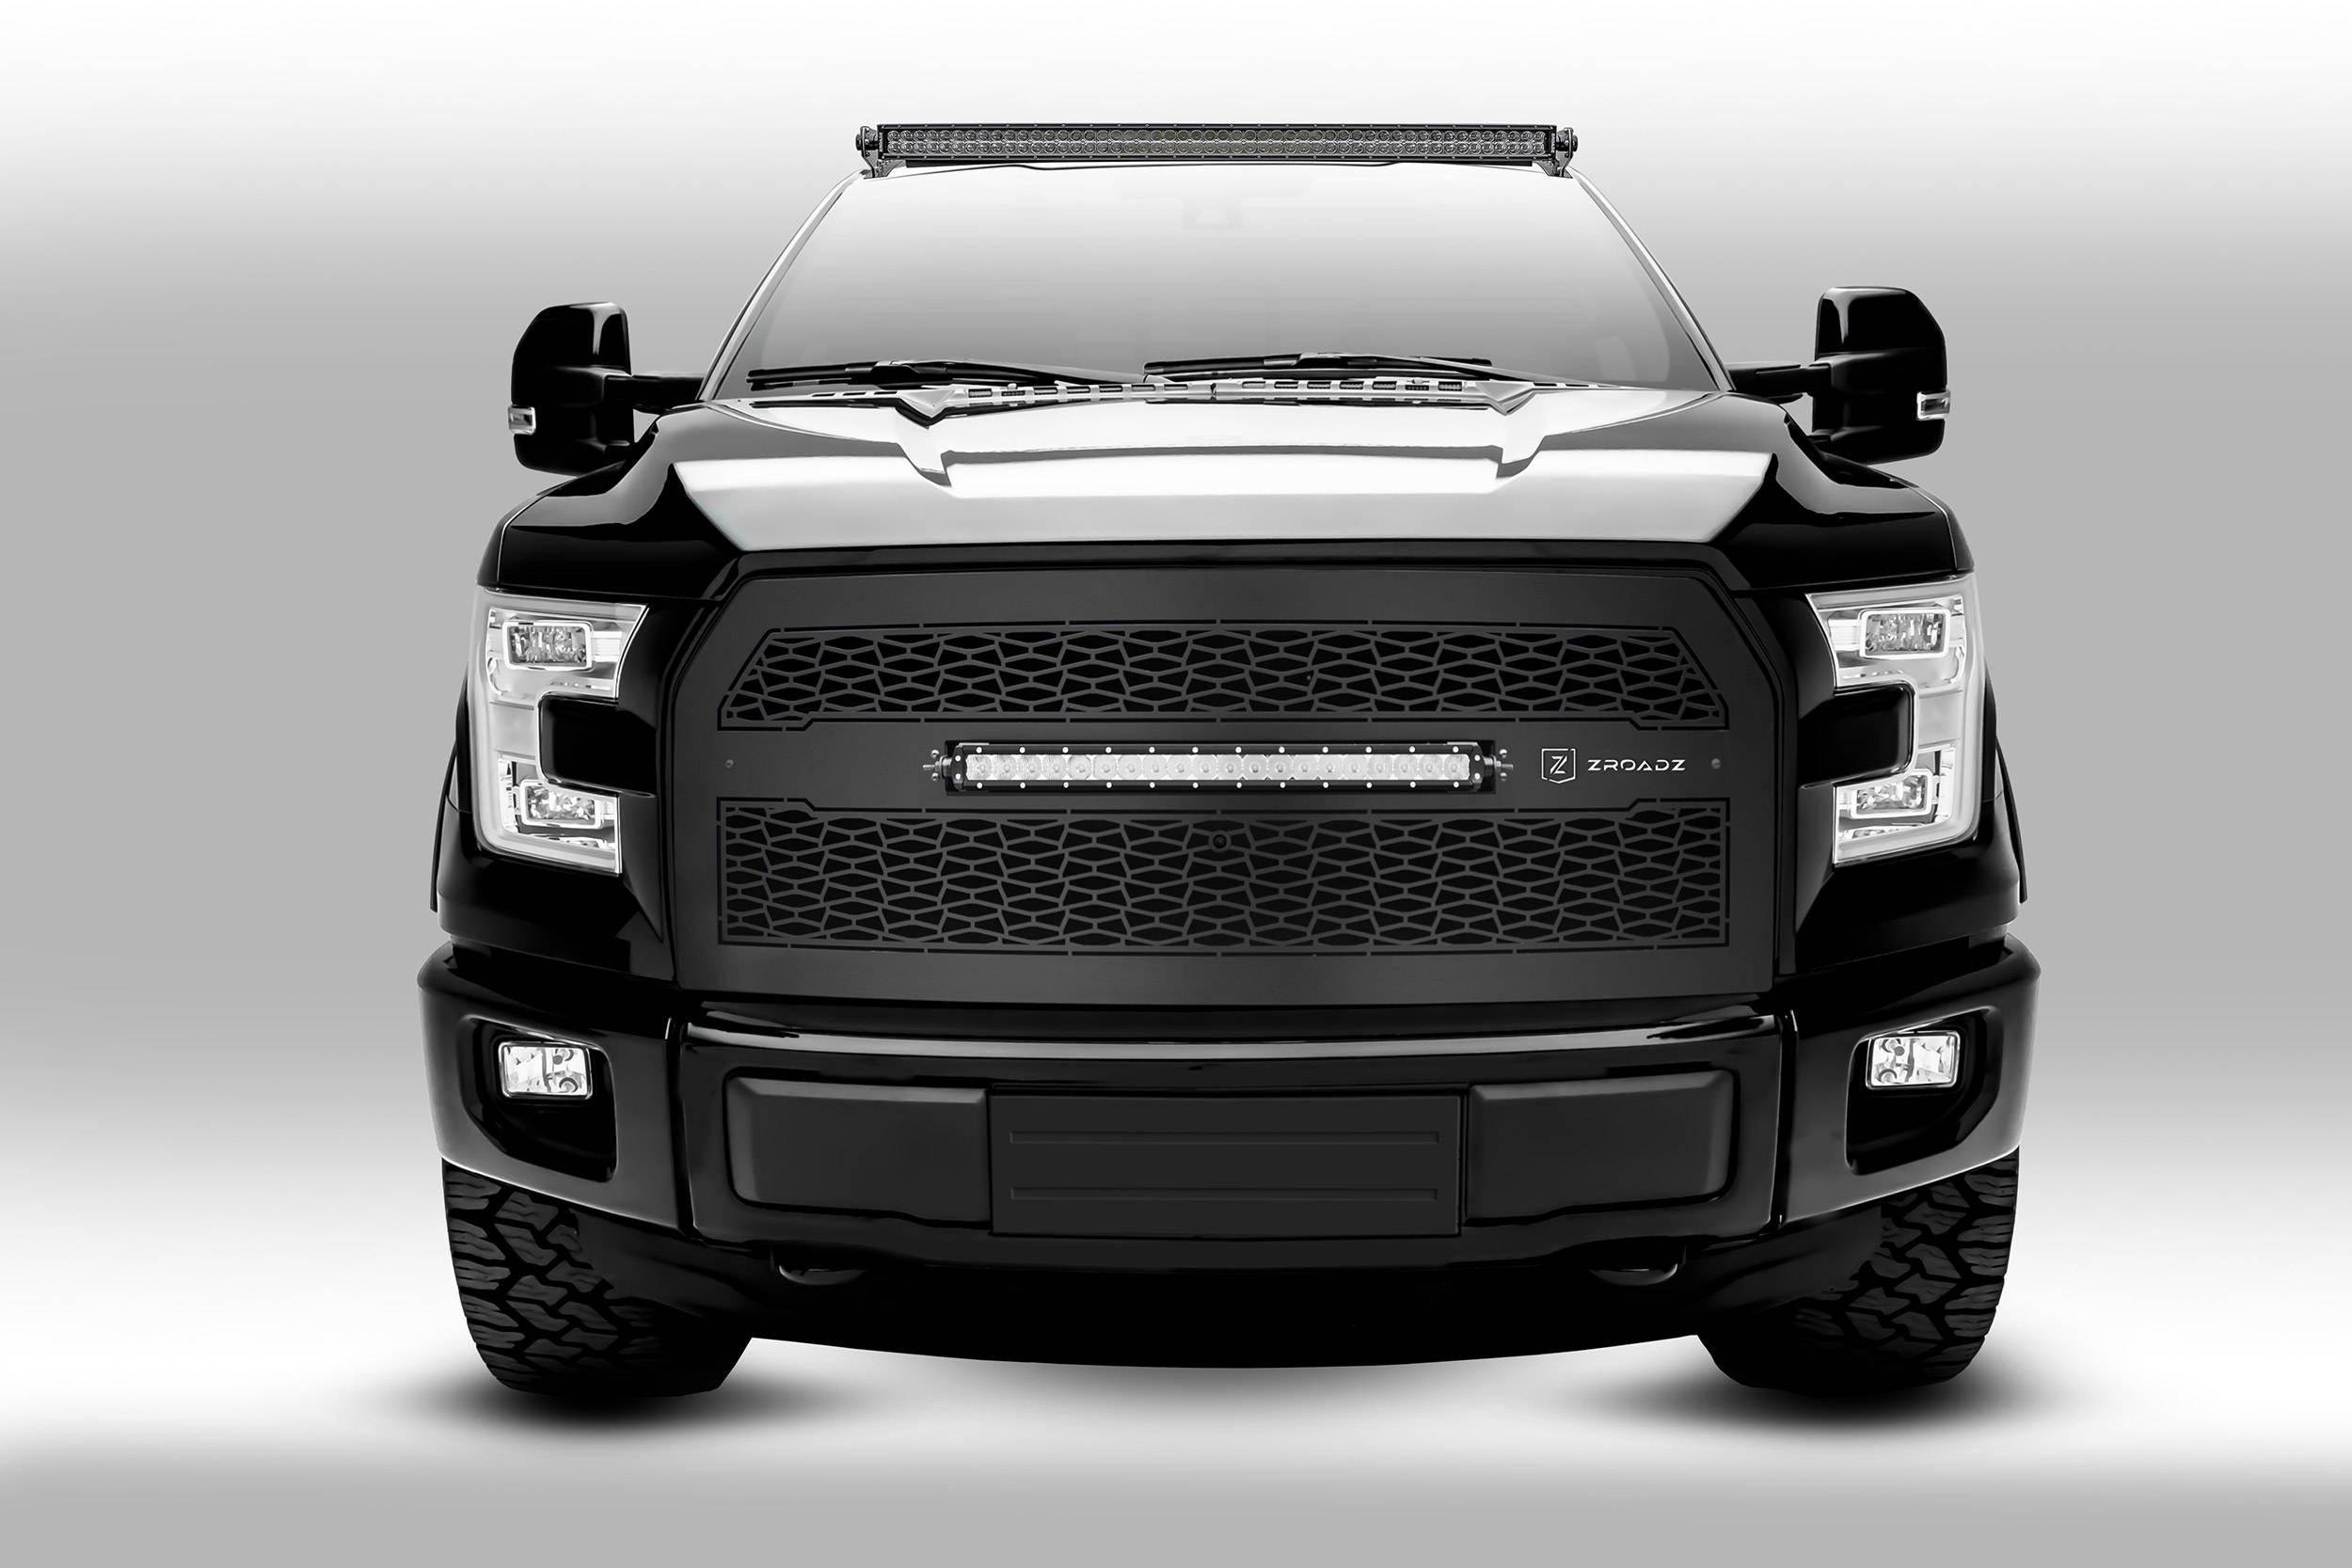 2015-2019 Ford F-150 Front Roof LED Kit, Incl. (1) 50 Inch LED Curved Double Row Light Bar - PN #Z335731-KIT-C